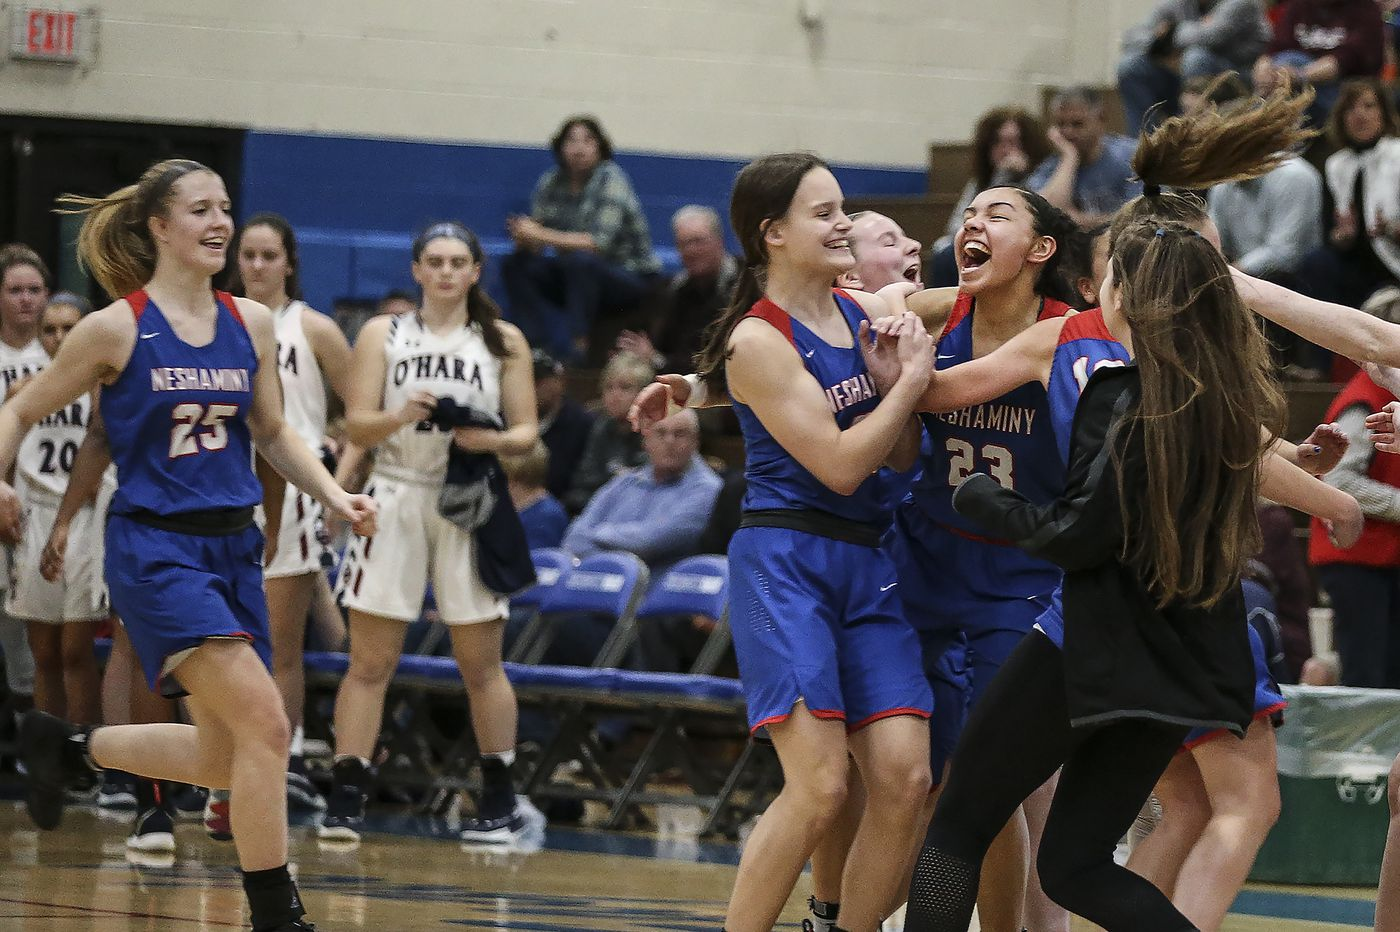 PIAA Class 6A girls playoffs: Brooke Mullin, Kristin Curley lead Neshaminy past Cardinal O'Hara in quarterfinals